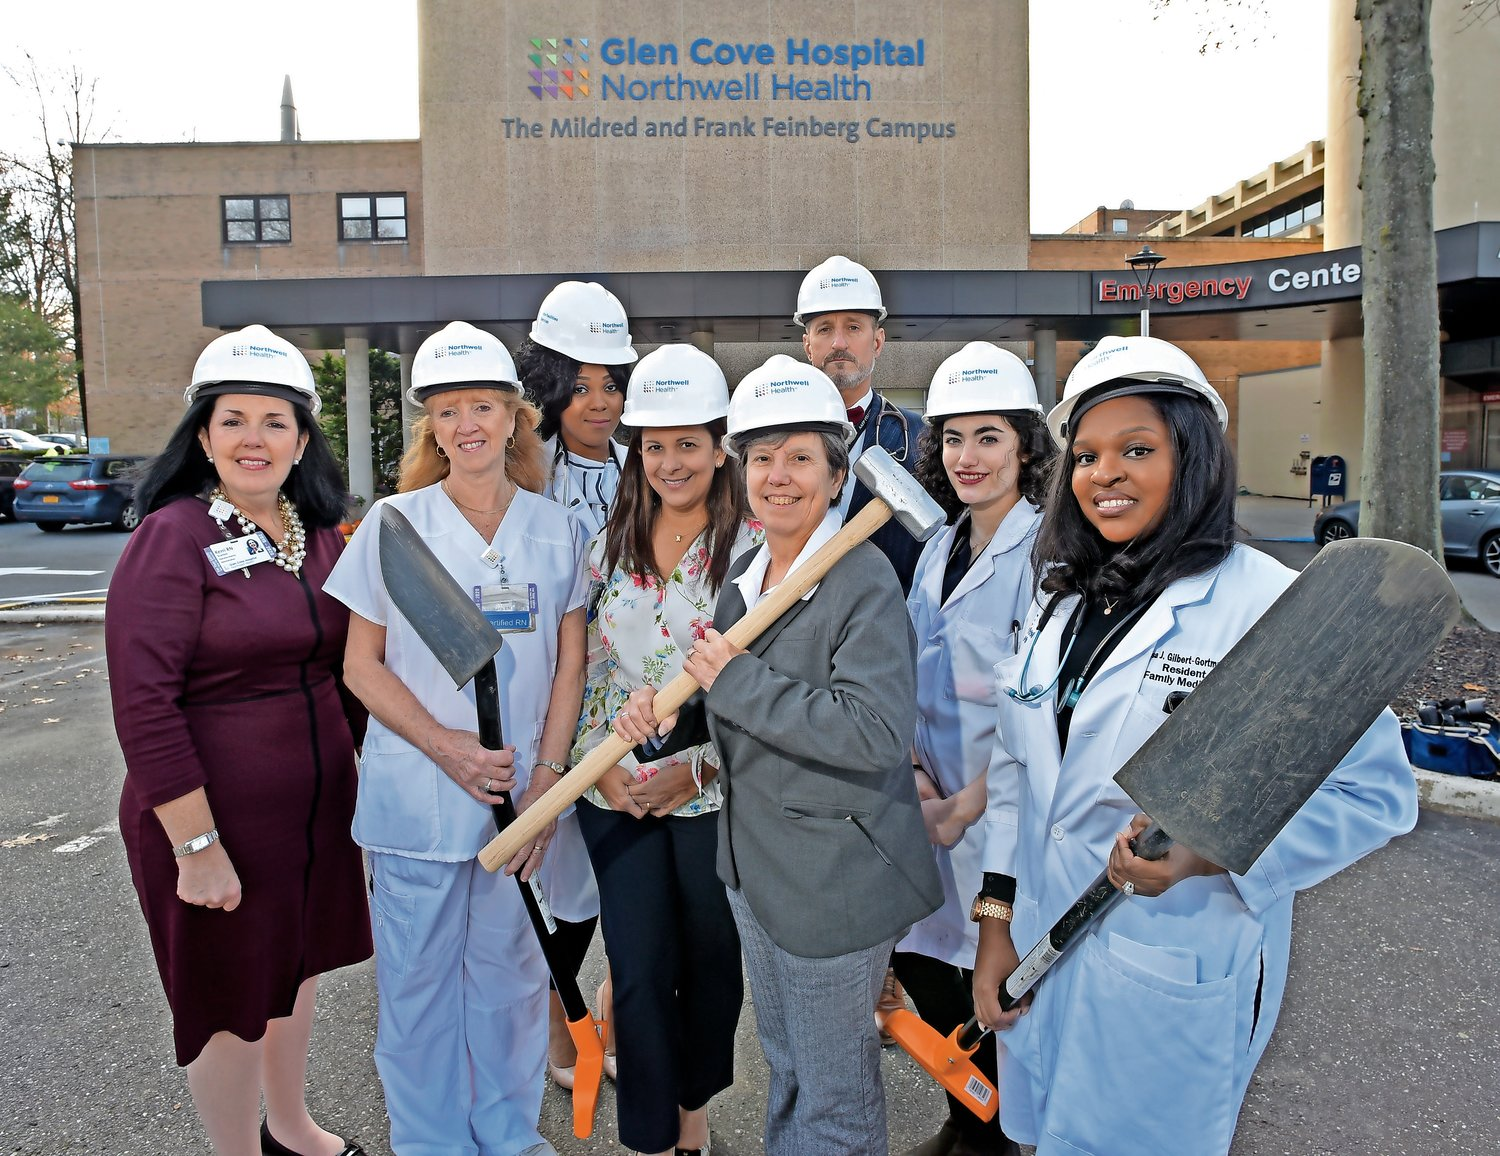 Glen Cove Hospital Executive Director Kerri Anne Scanlon, far left, Dr. Barbara Keber, chair of family medicine at the hospital, center, in gray, and members of the staff gathered in early December to break ground on the hospital's new Family Medicine Center.